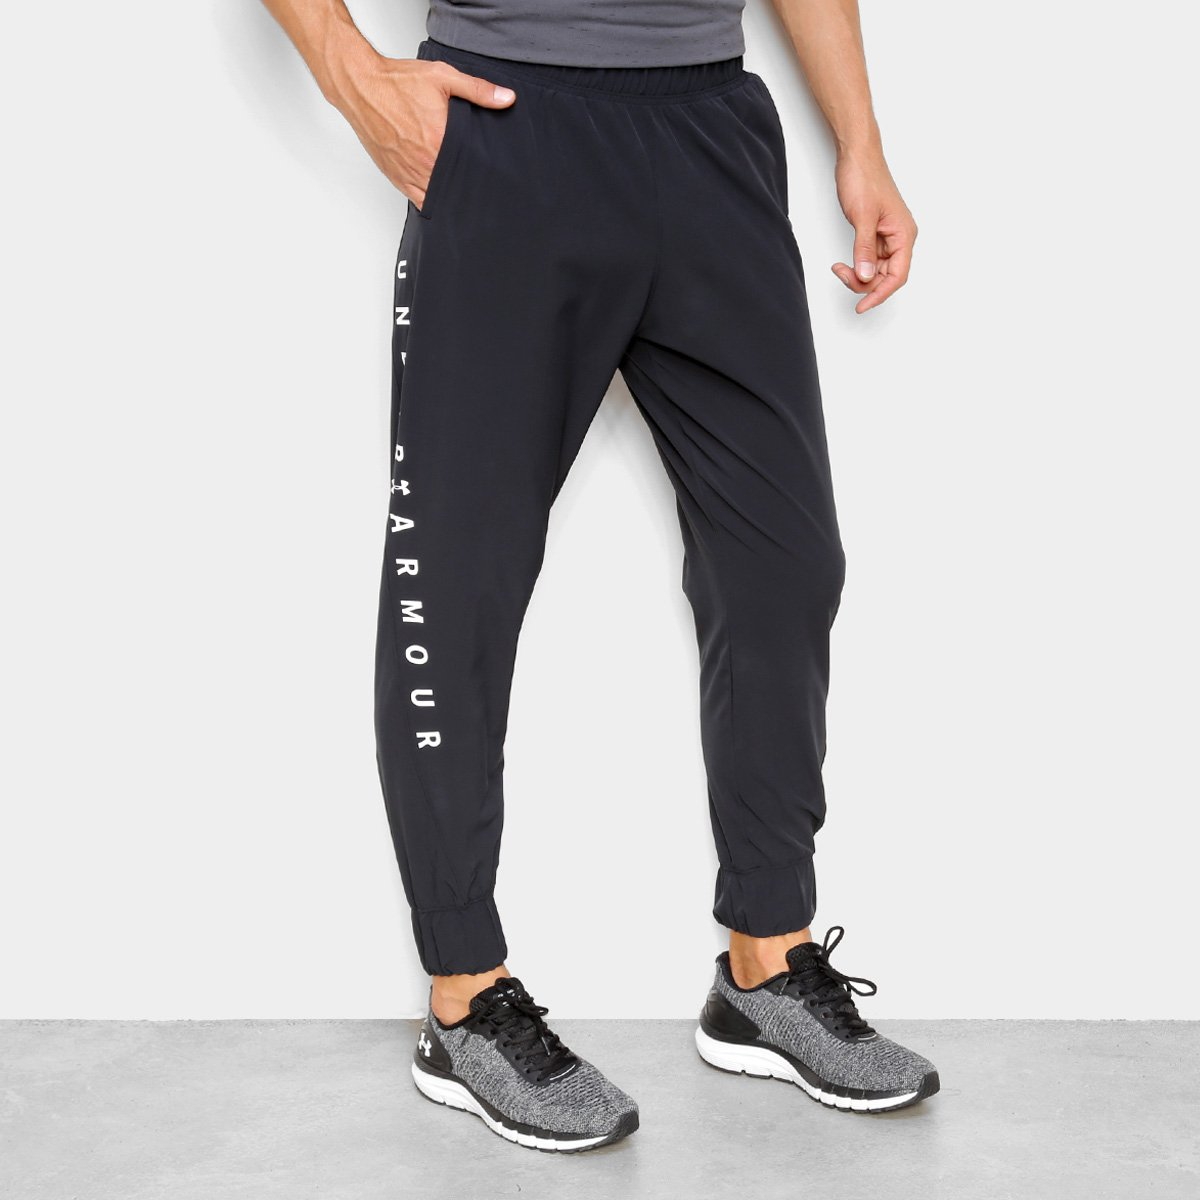 Calça Under Armour Graphic Masculina